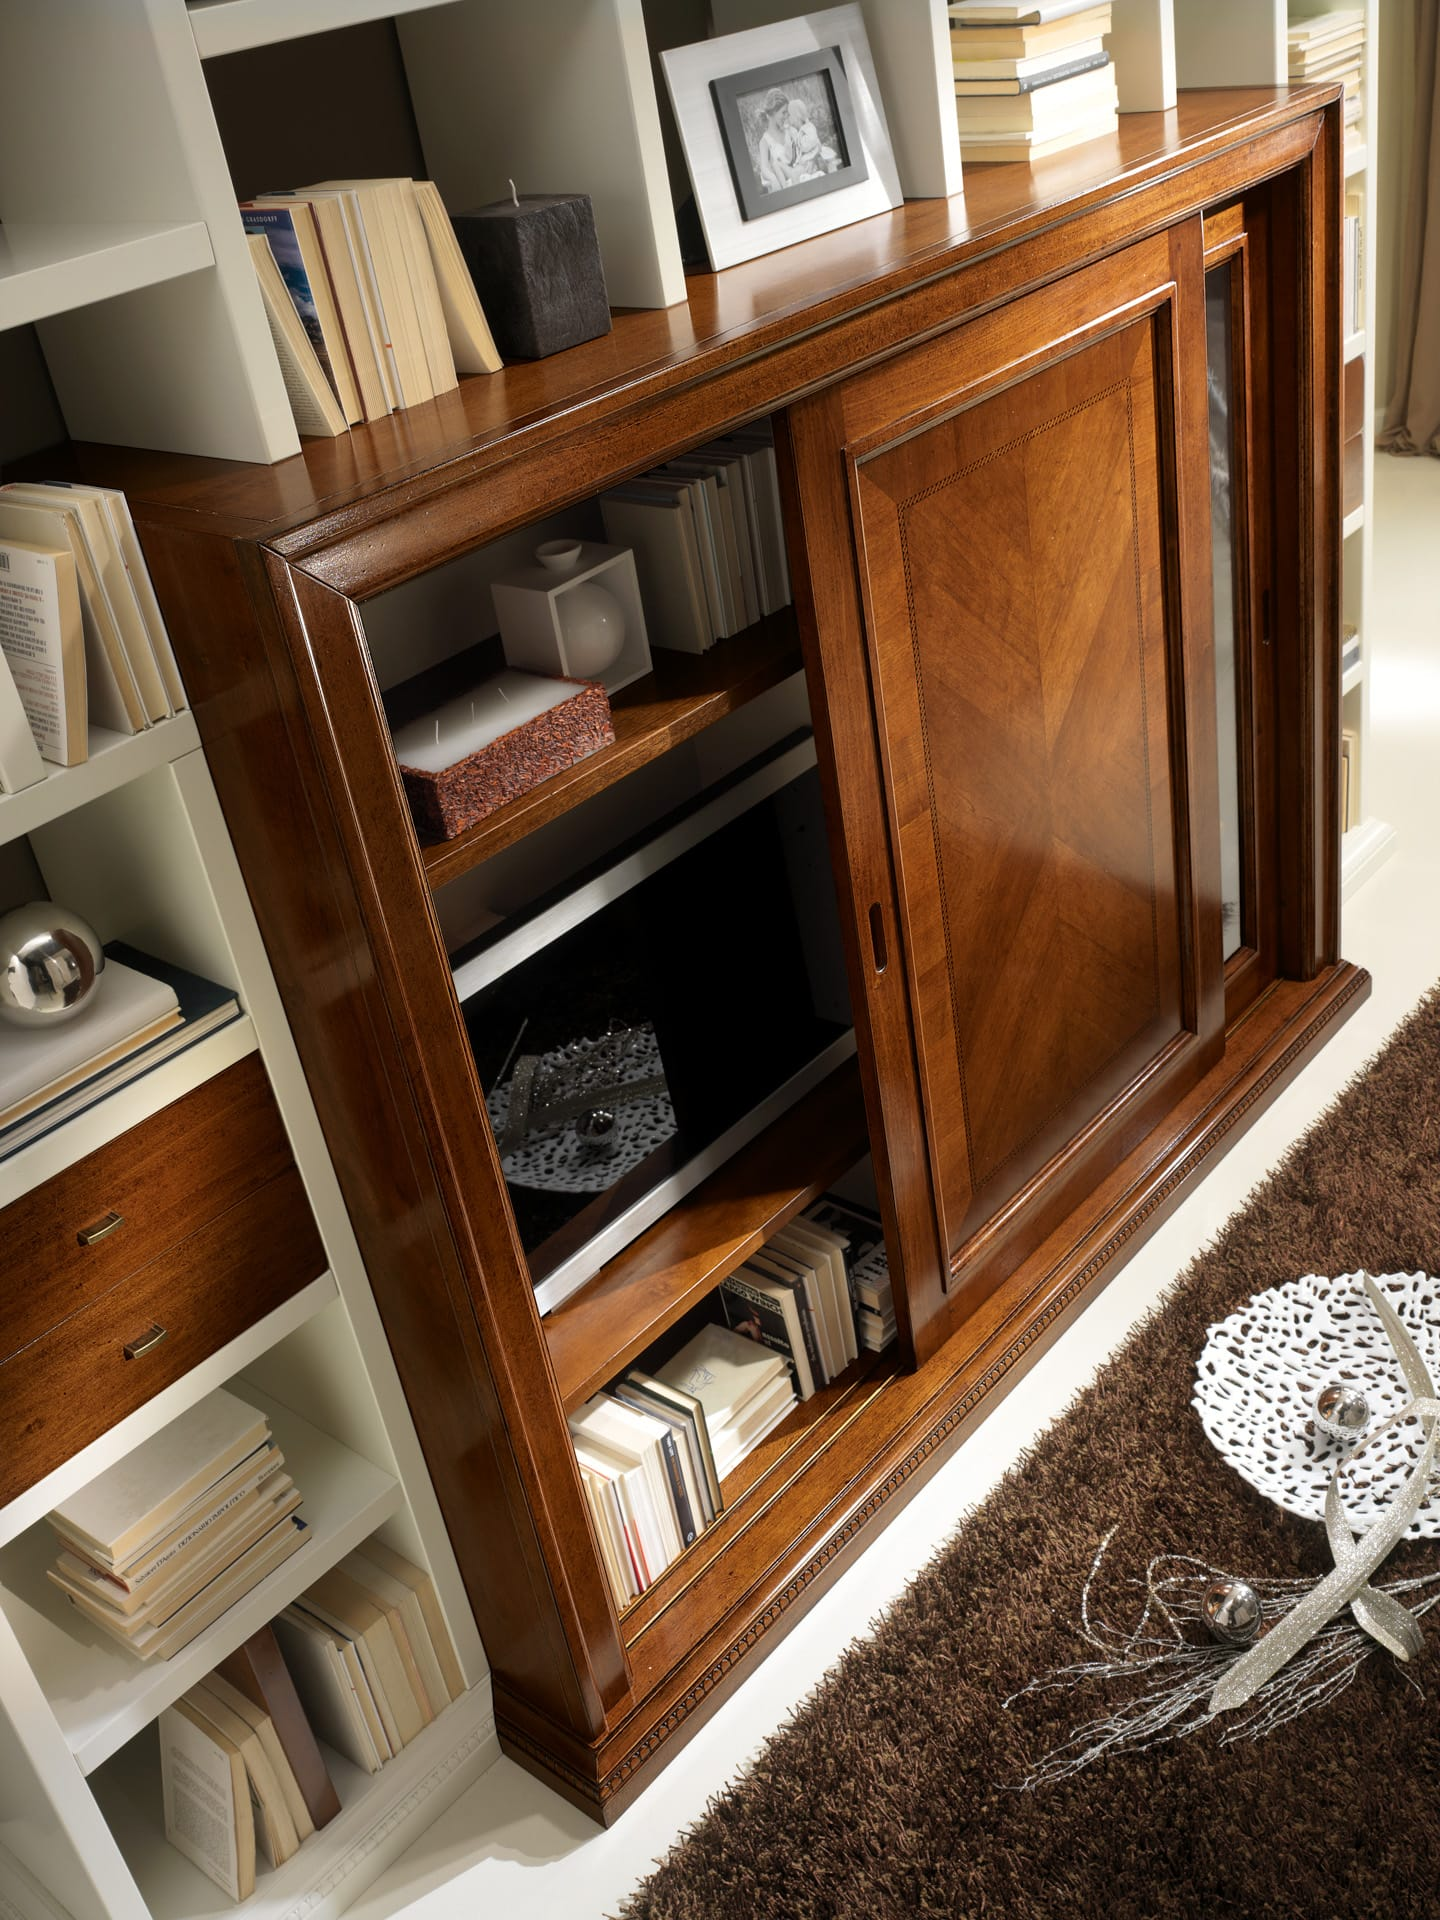 Ducale Trend - Gallery Right 1